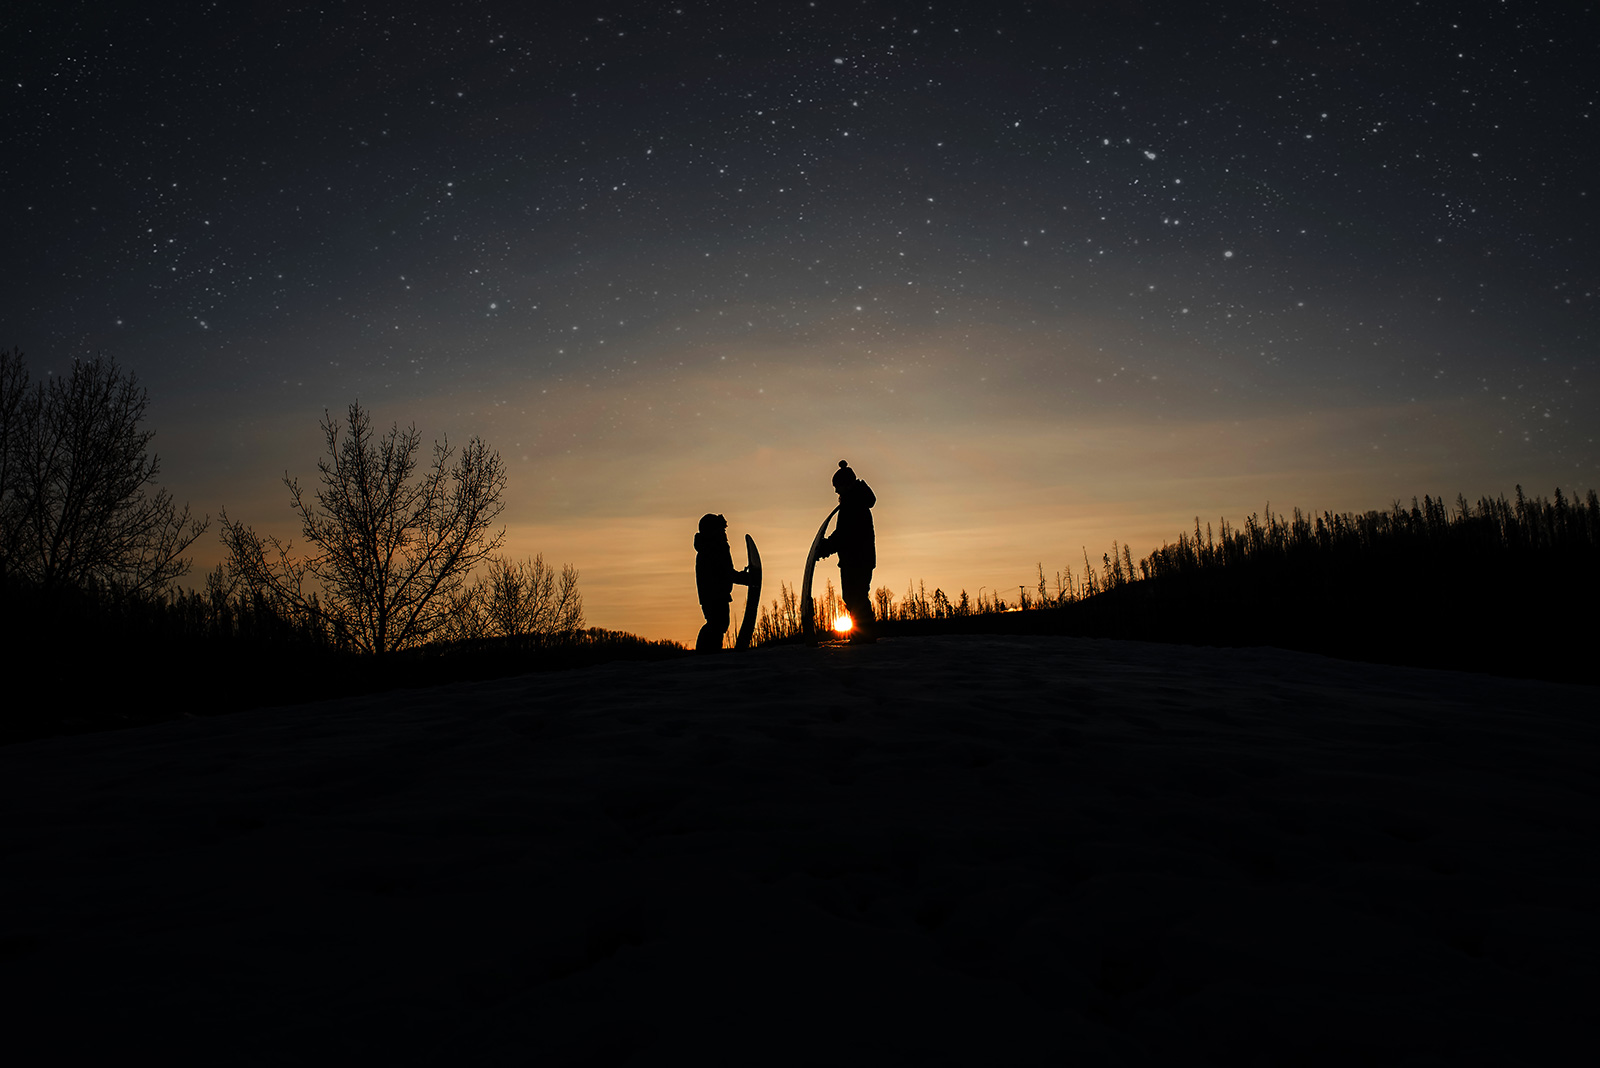 children-silhouette-starry-sky-night-Melissa-Richard1